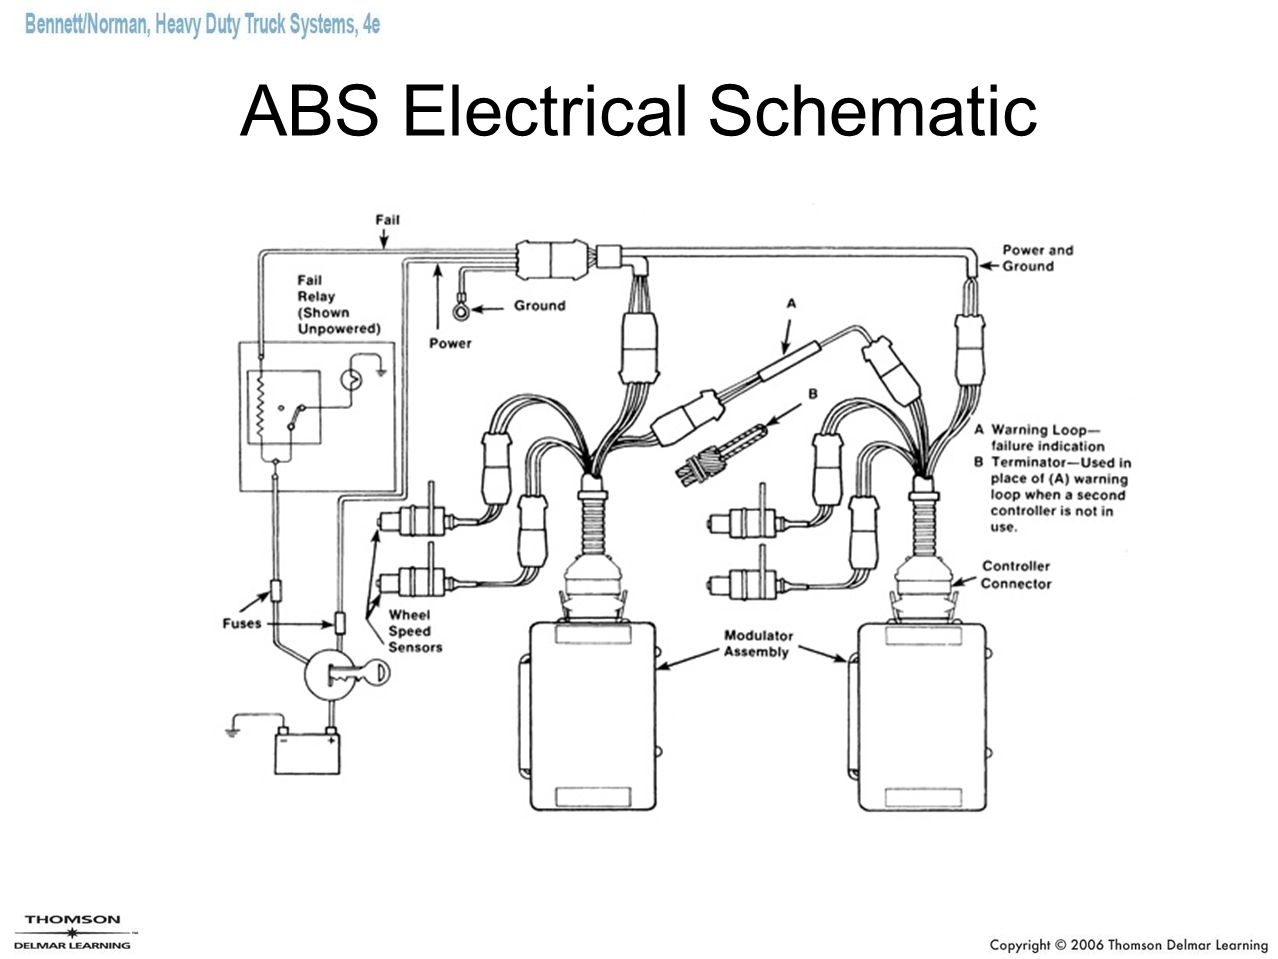 ABS Electrical Schematic